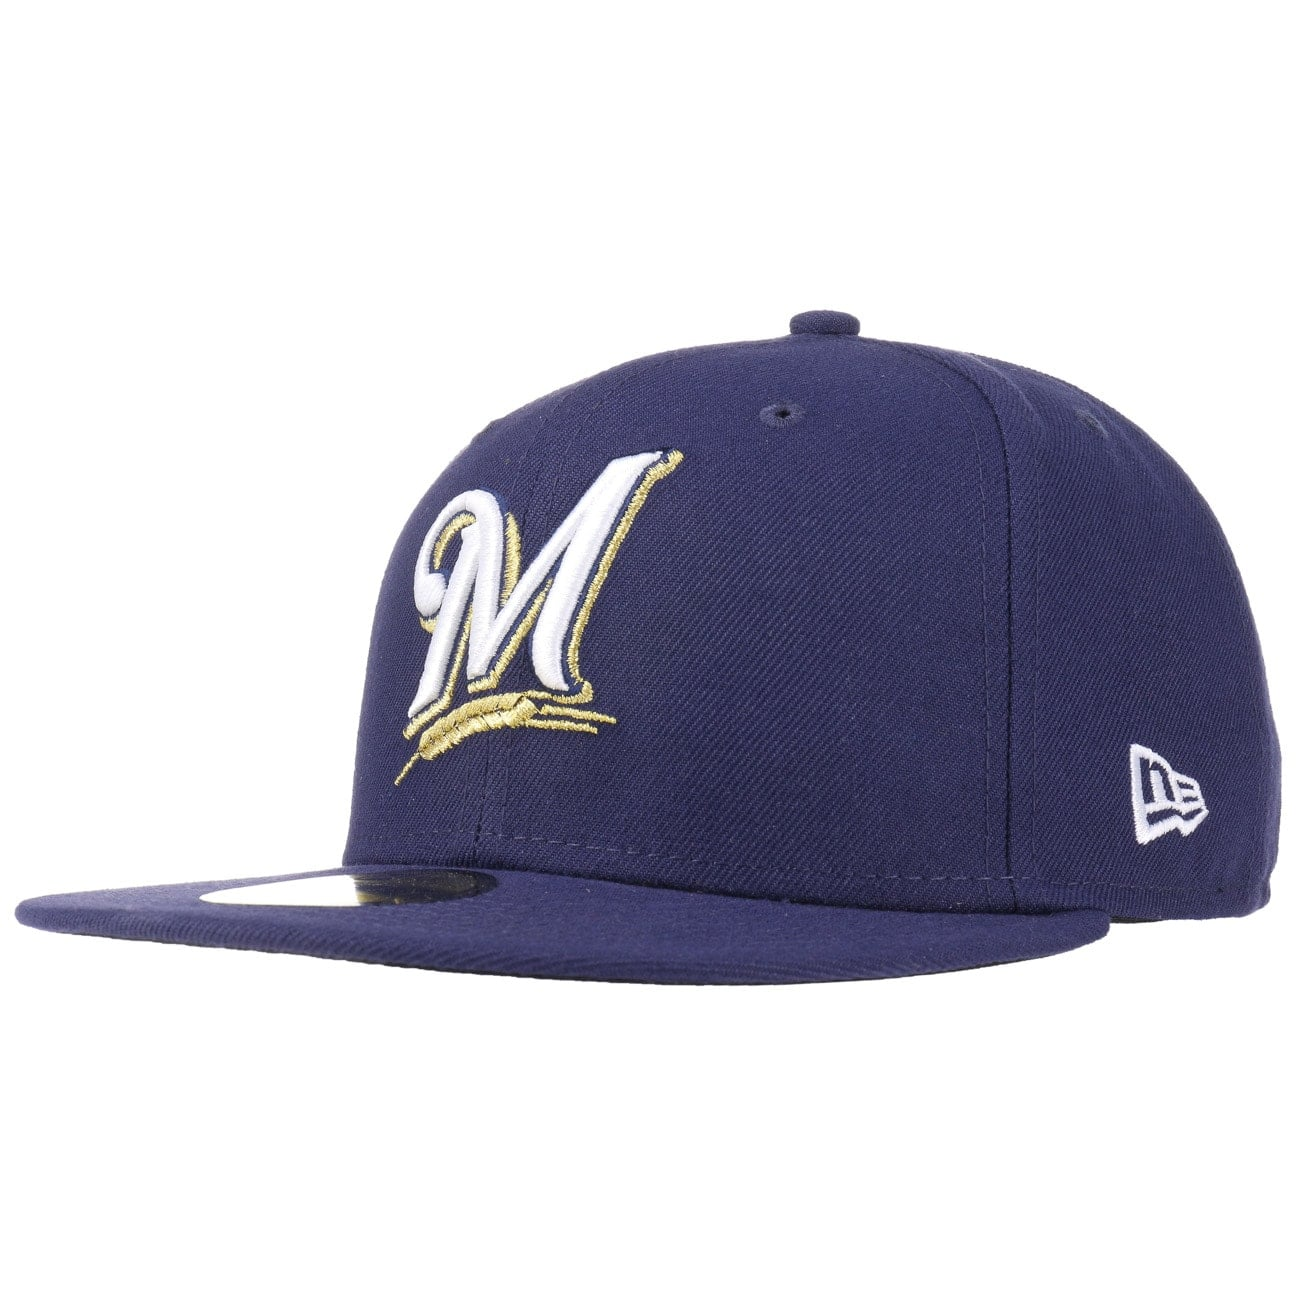 59fifty-ac-perf-brewers-cap-by-new-era-baseballcap